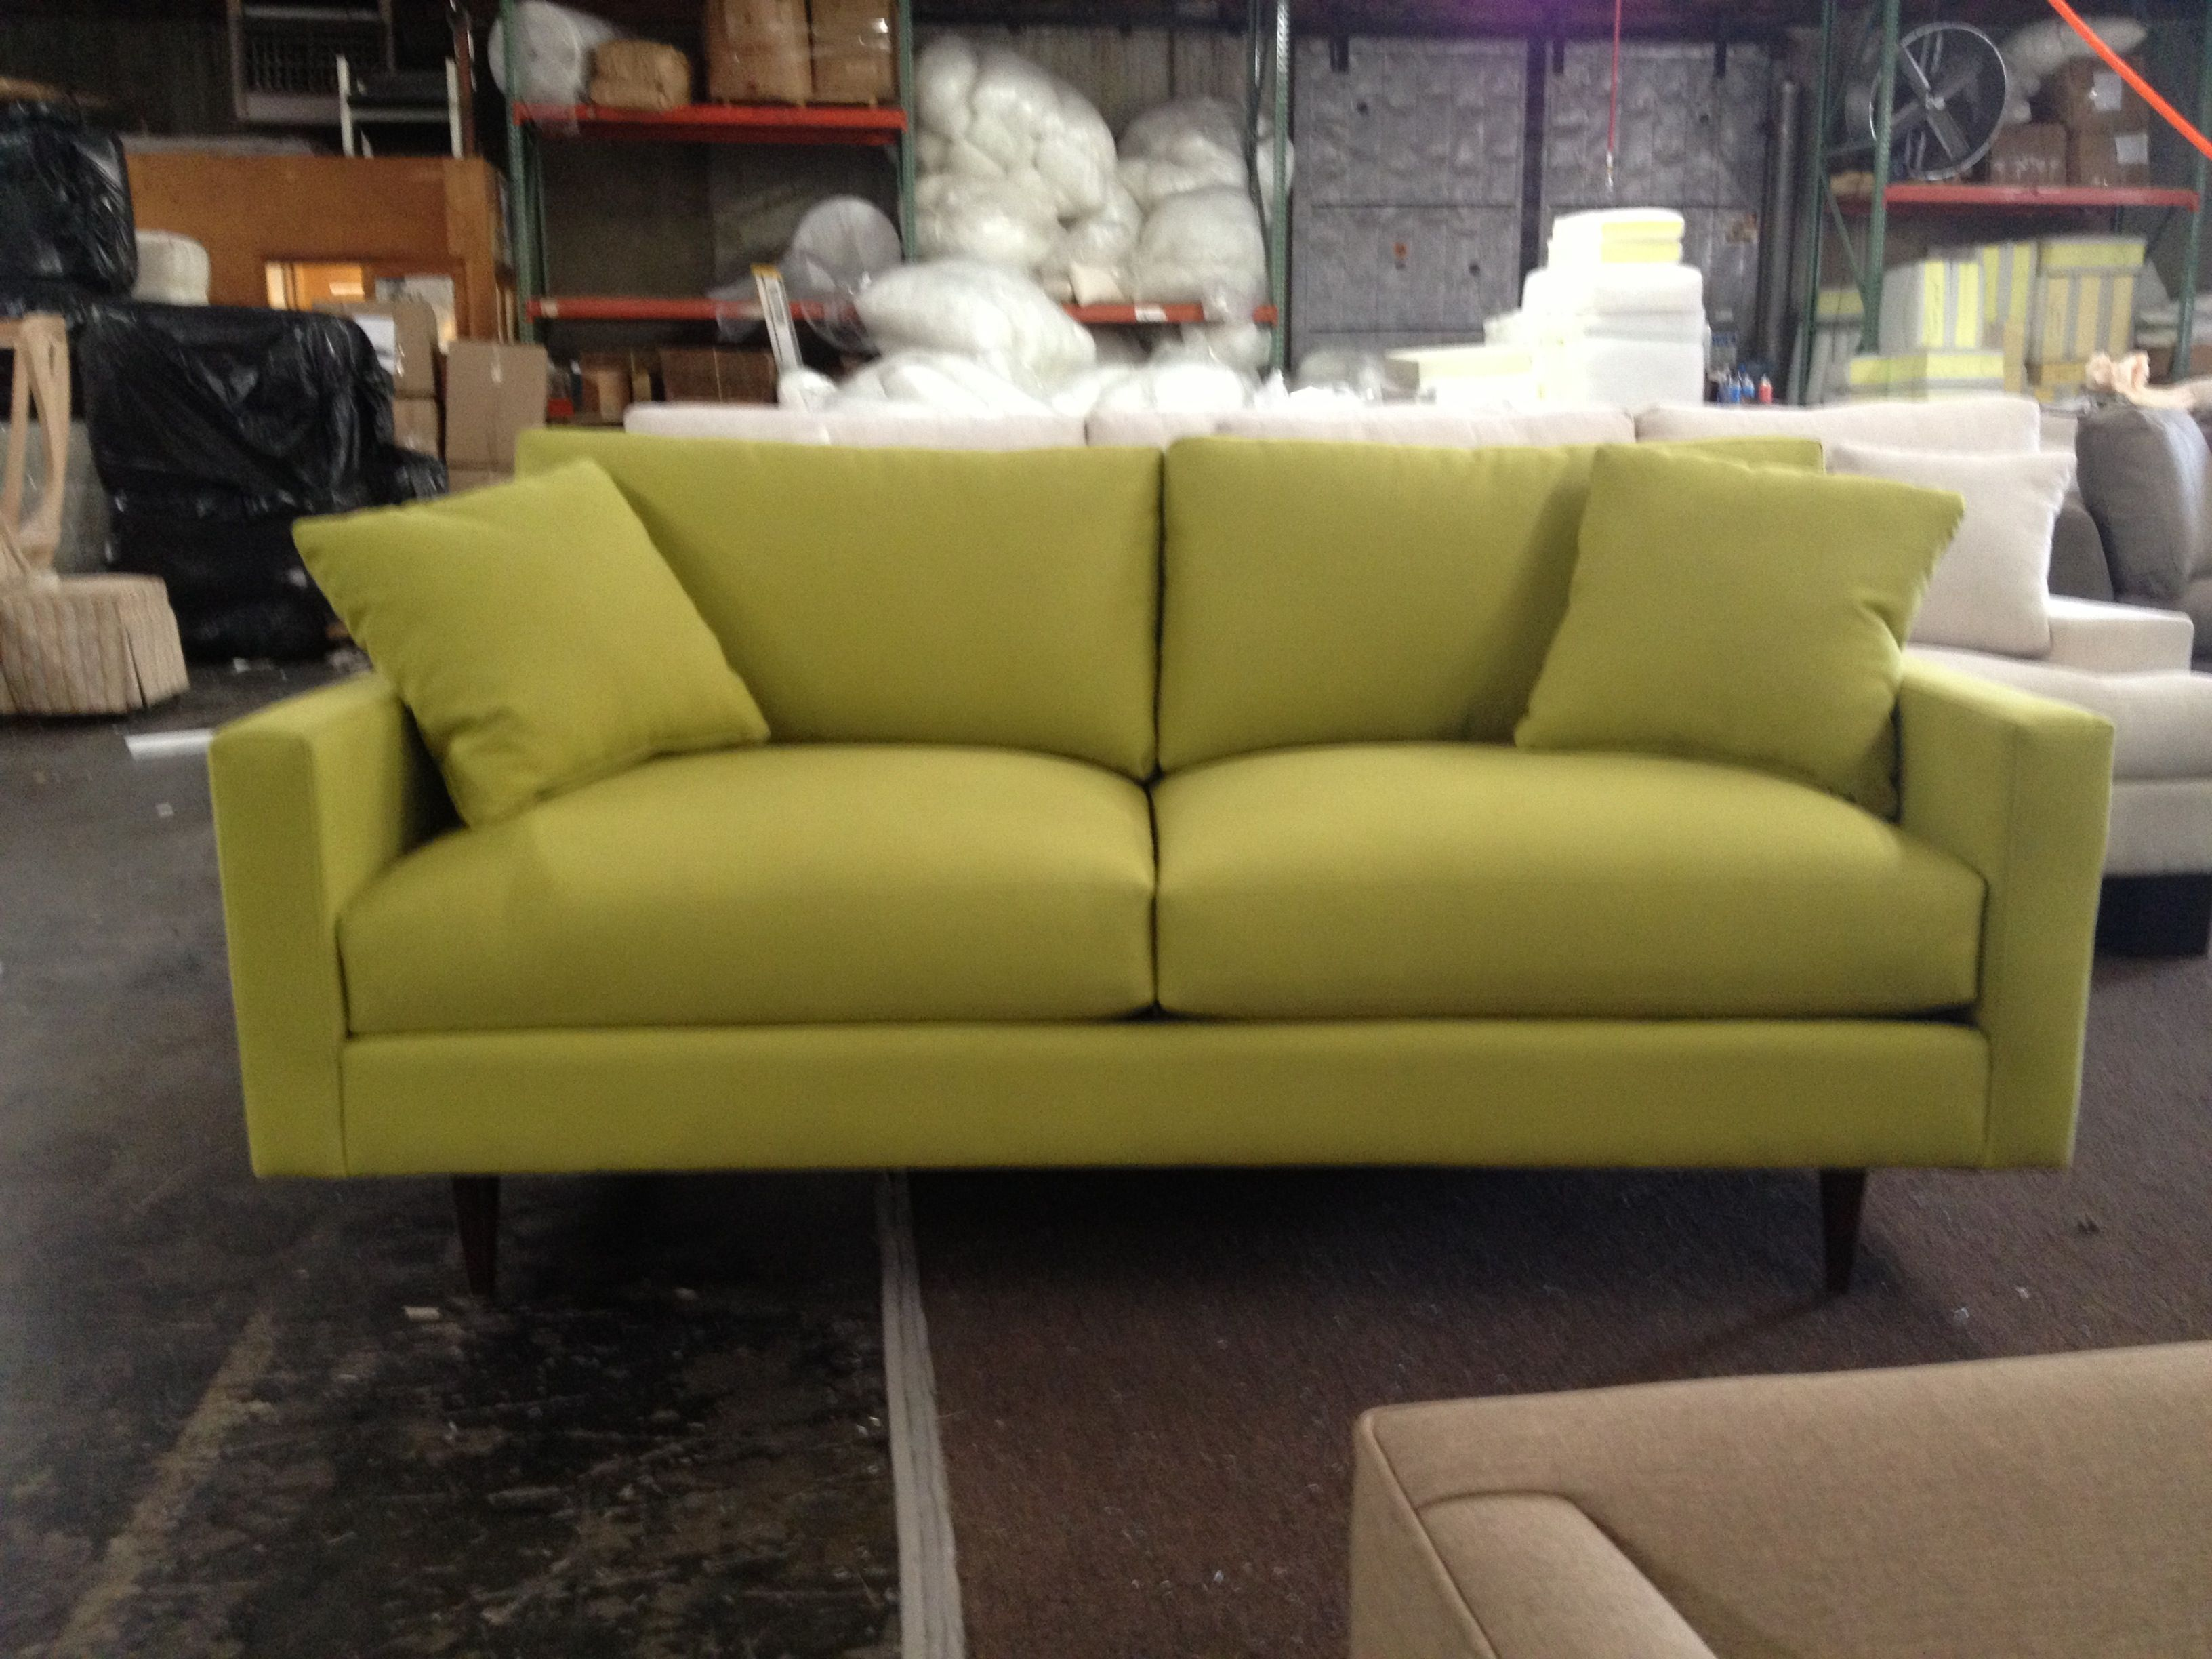 Hana Sofa Every Style Can Be Customized In Virtually Any Way Possible